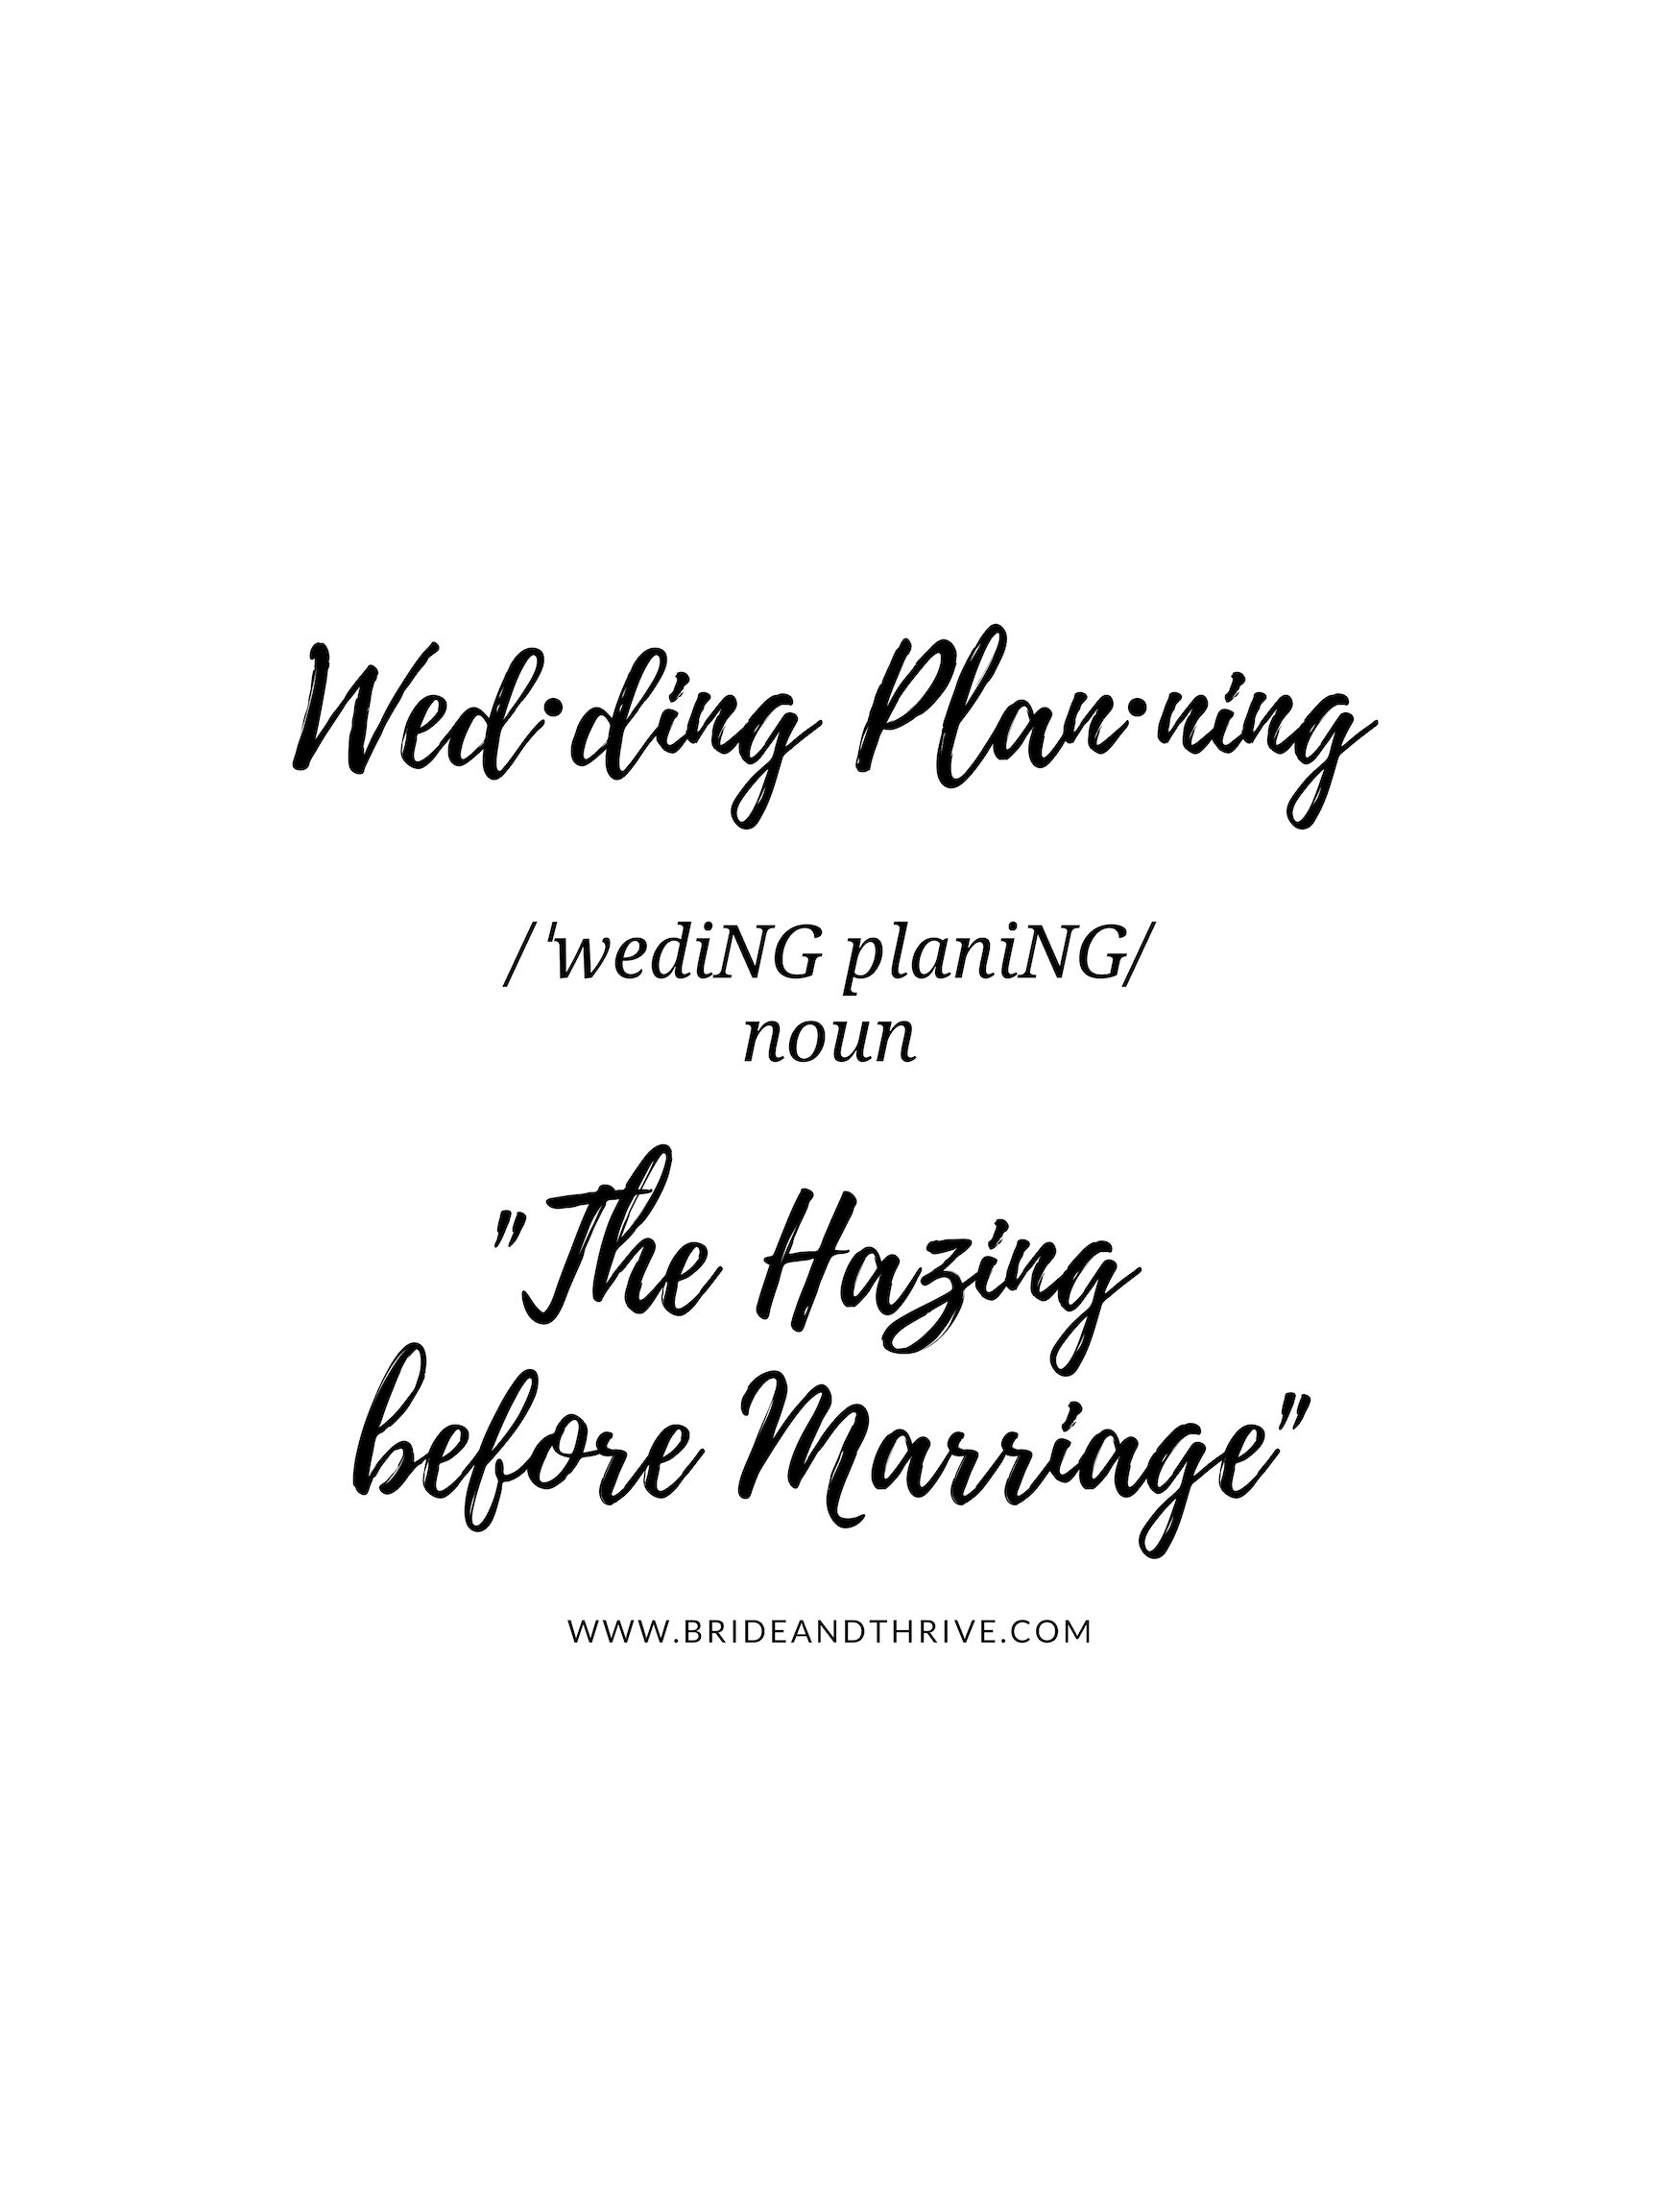 Wedding Planning Quote Hazing Before Marriage Definition Of Wedding Planning Www Bridea Wedding Planning Quotes Wedding Planning Inspiration Before Marriage